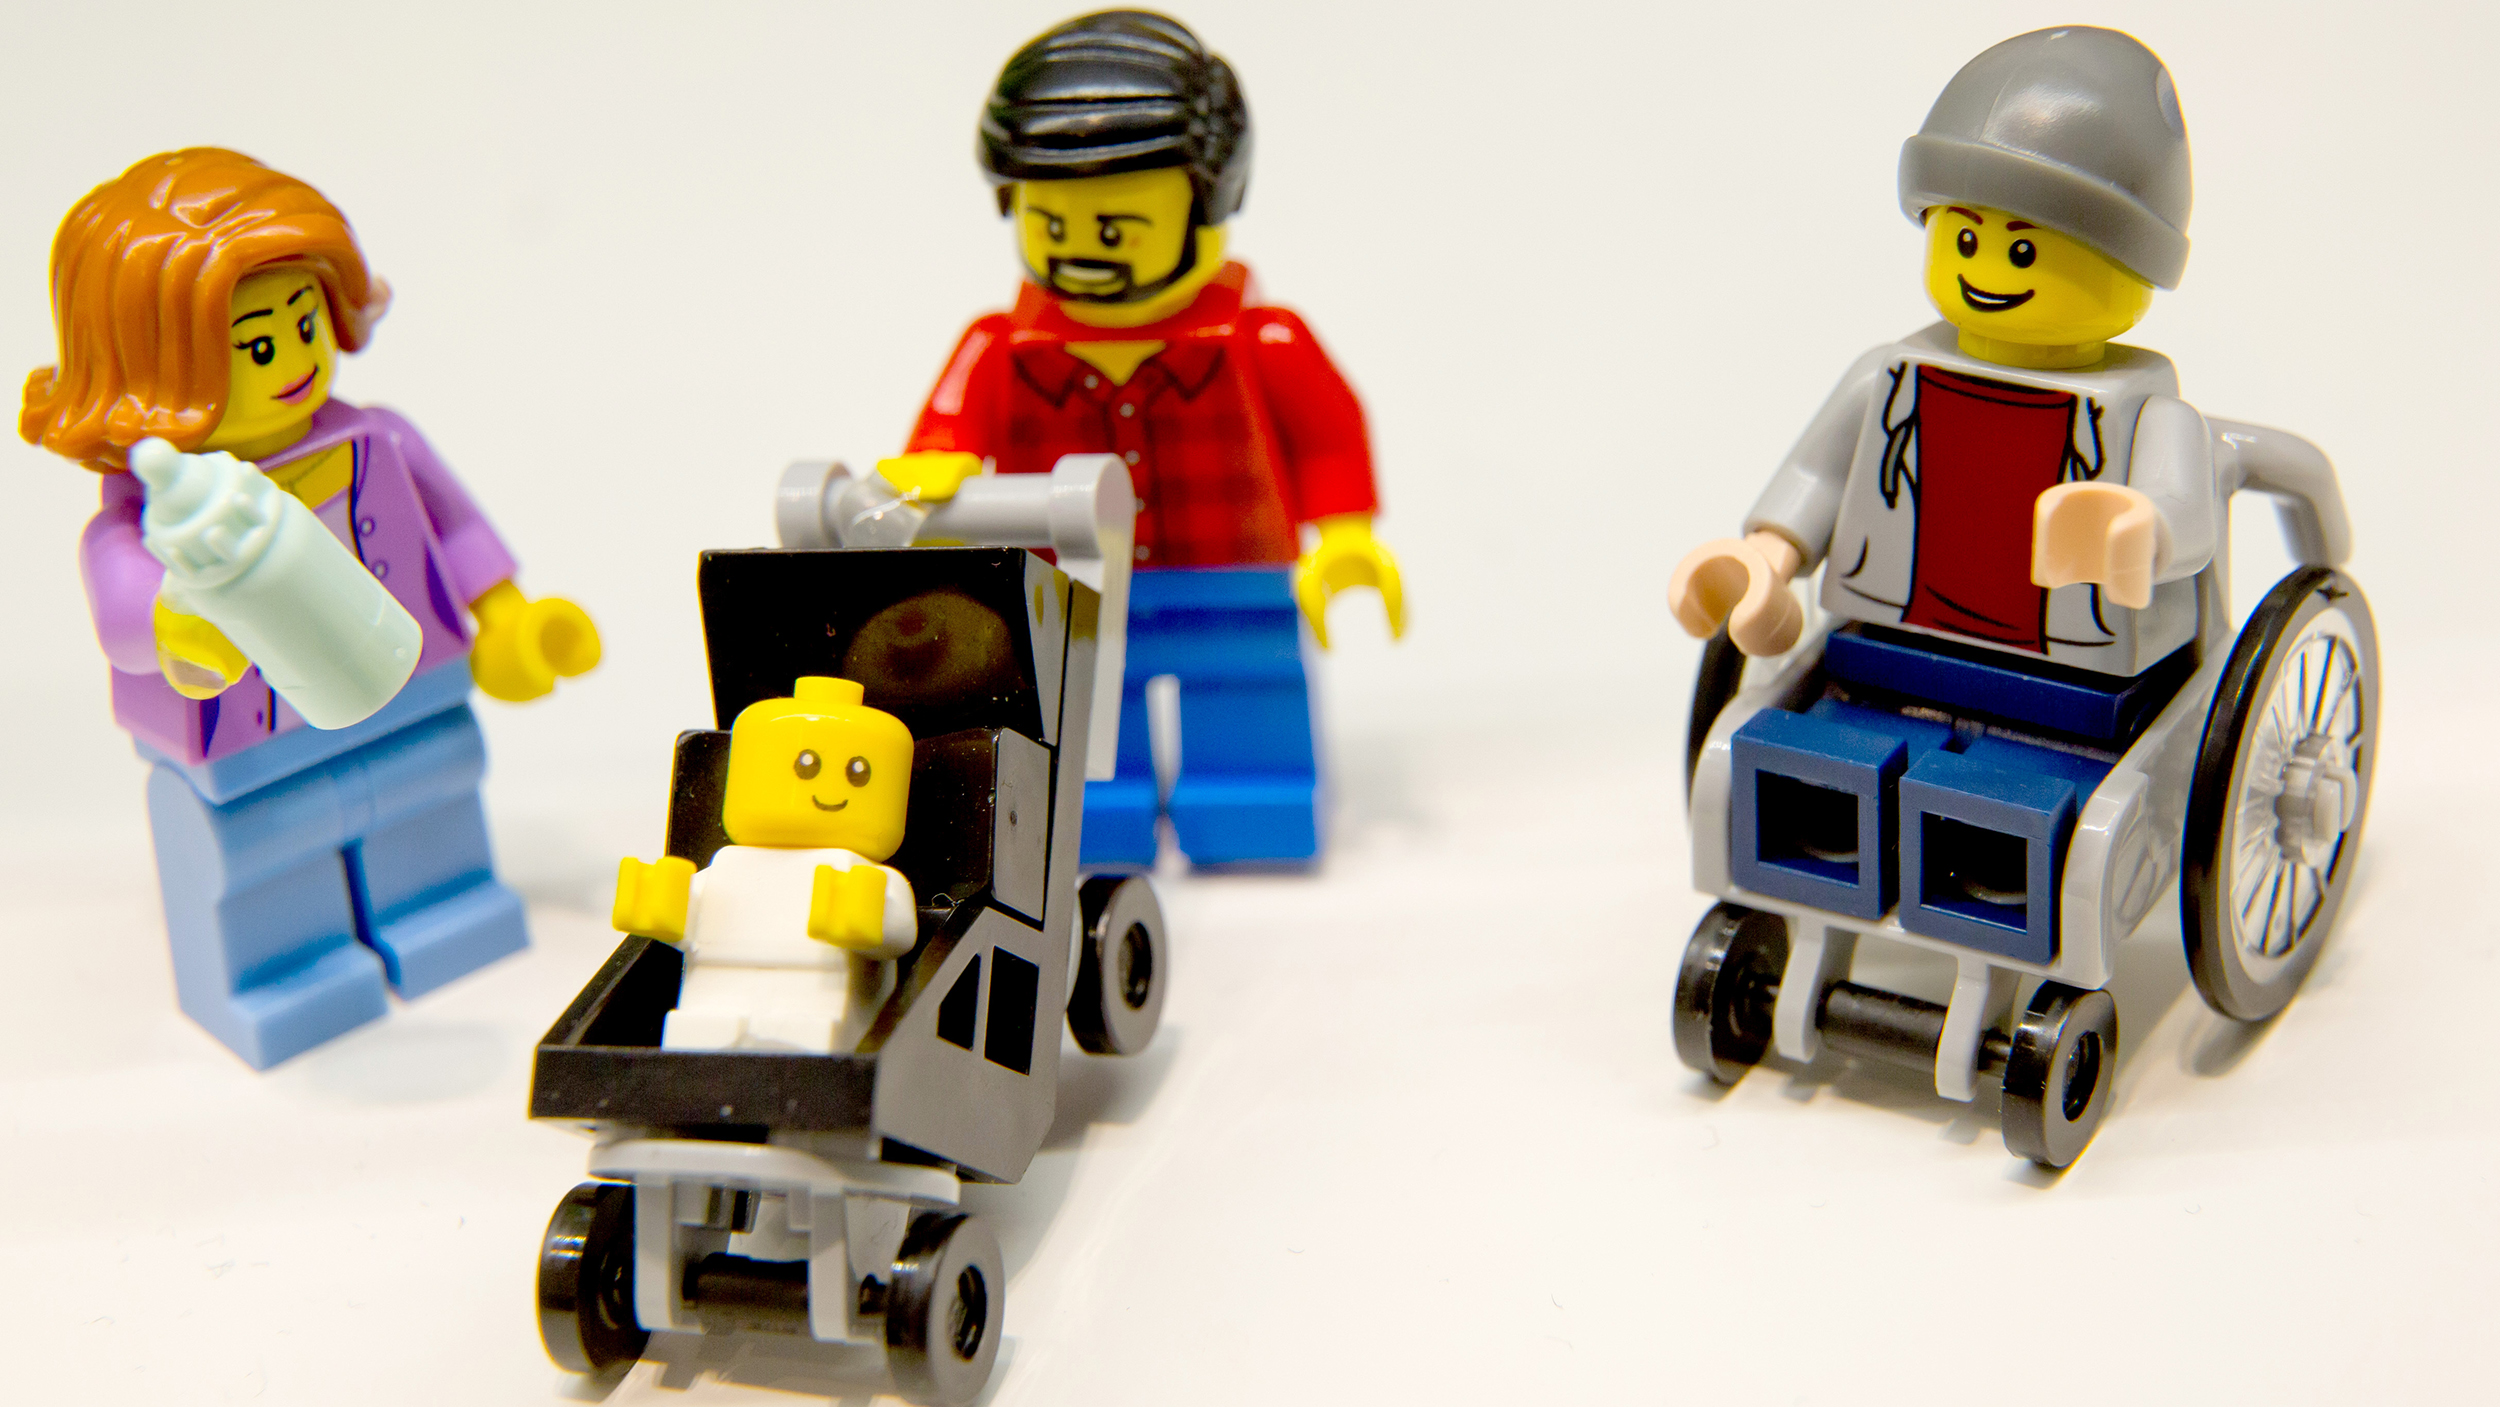 New Lego set features stay-at-home dad and working mom - TODAY.com